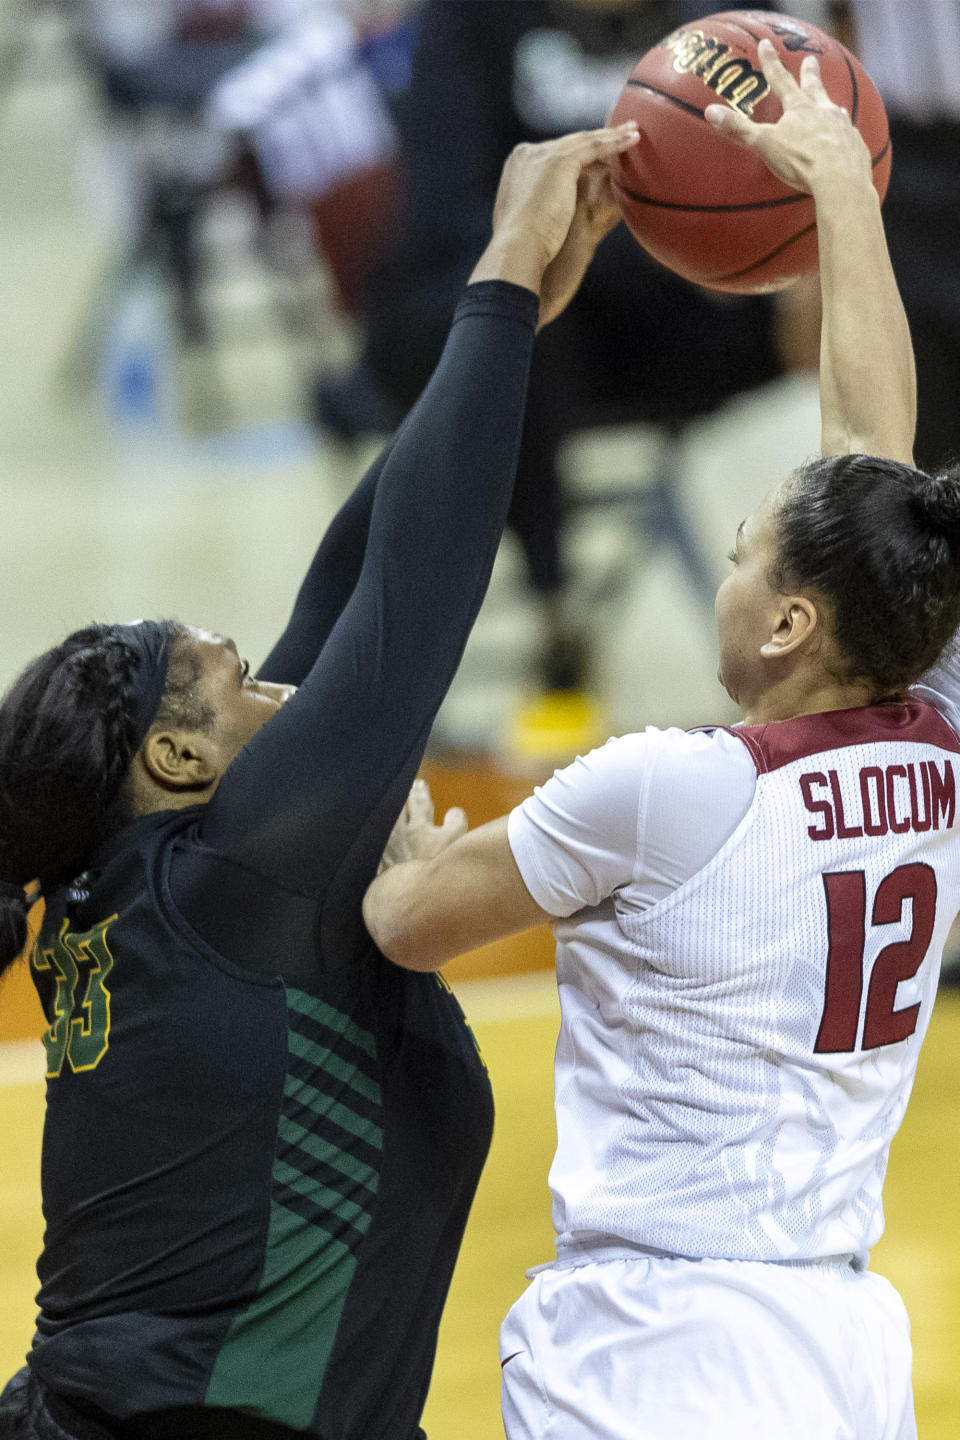 Wright State center Tyler Frierson (33) blocks Arkansas guard Destiny Slocum (12) during the first half of a college basketball game in the first round of the women's NCAA tournament at the Frank Erwin Center in Austin, Texas, Monday, March 22, 2021. (AP Photo/Stephen Spillman)